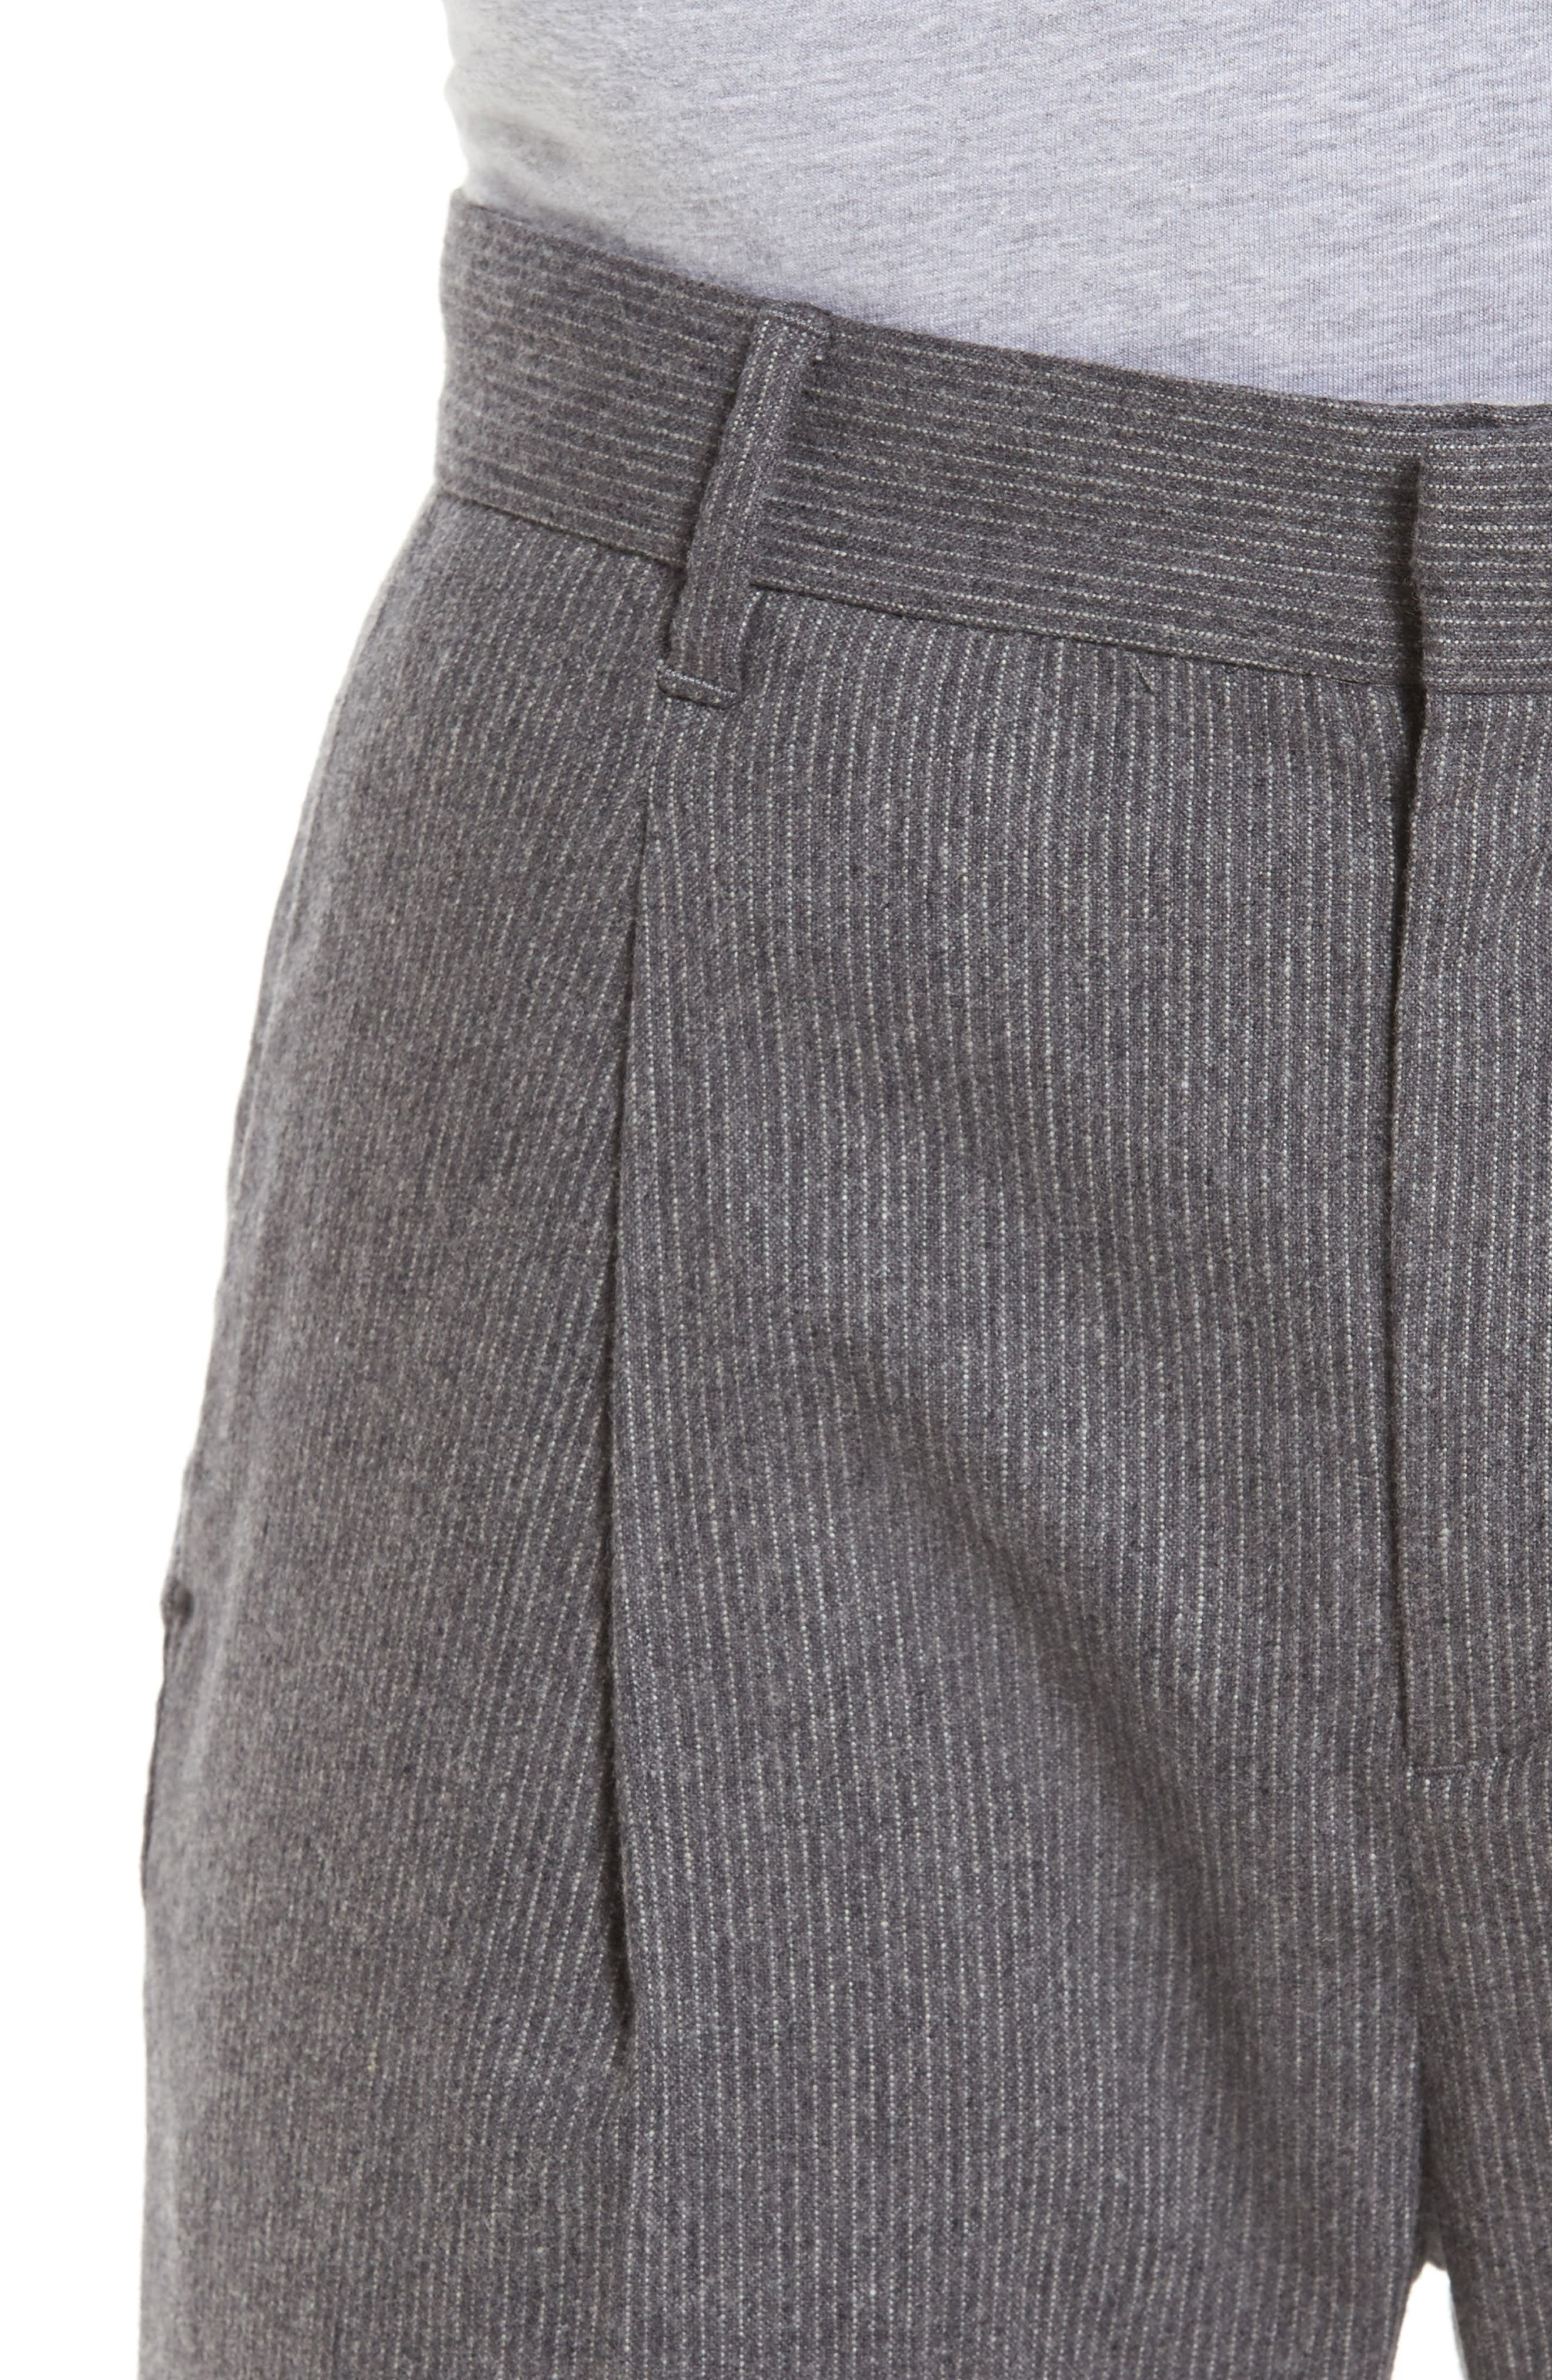 Rushmore Pinstripe Stretch Wool Blend Trousers,                             Alternate thumbnail 4, color,                             020